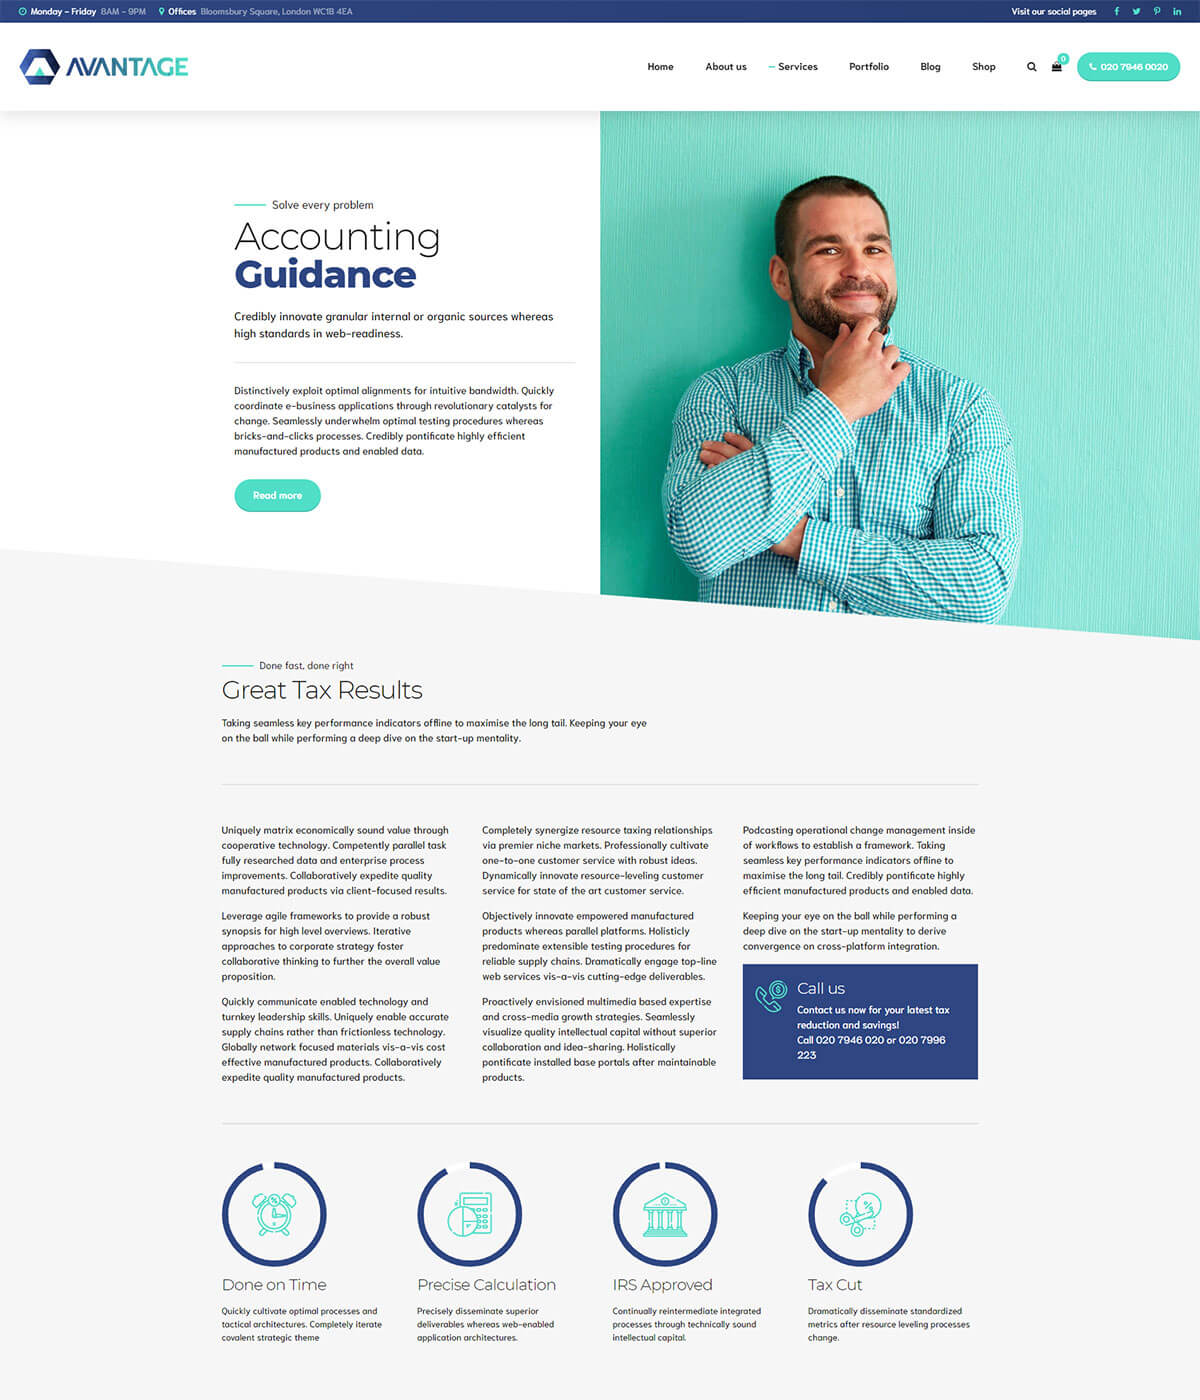 http://avantage.bold-themes.com/wp-content/uploads/2019/05/accountant-07-single-service.jpg